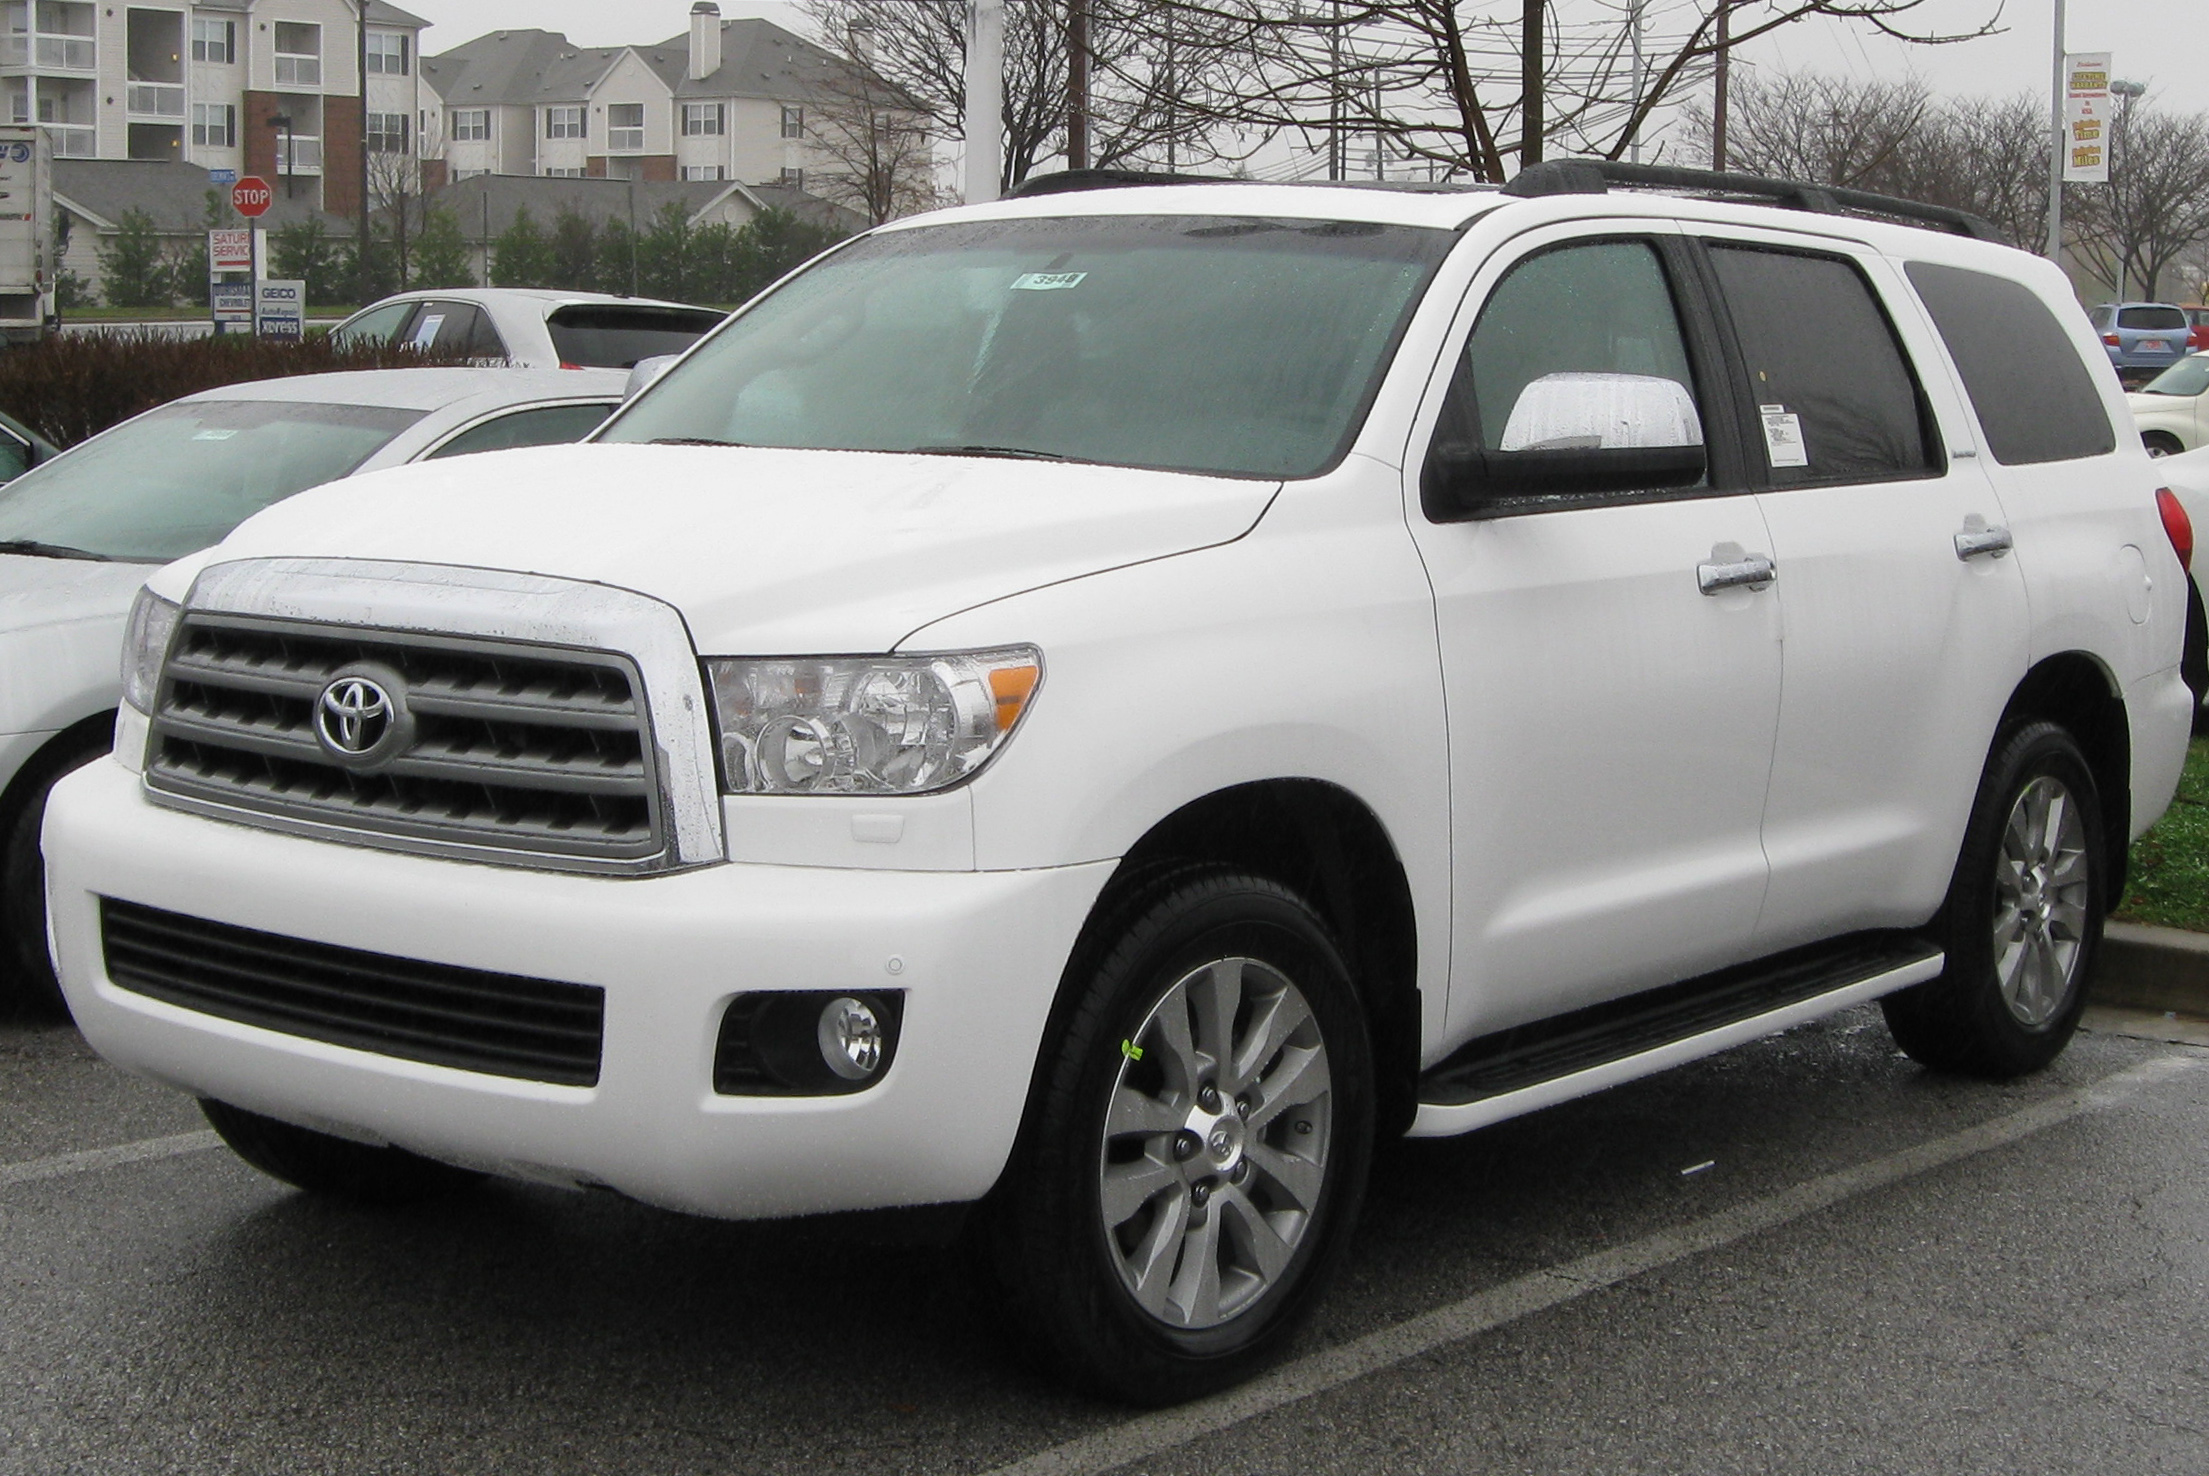 File:2010 Toyota Sequoia Limited -- 11-25-2009.jpg - Wikimedia Commons